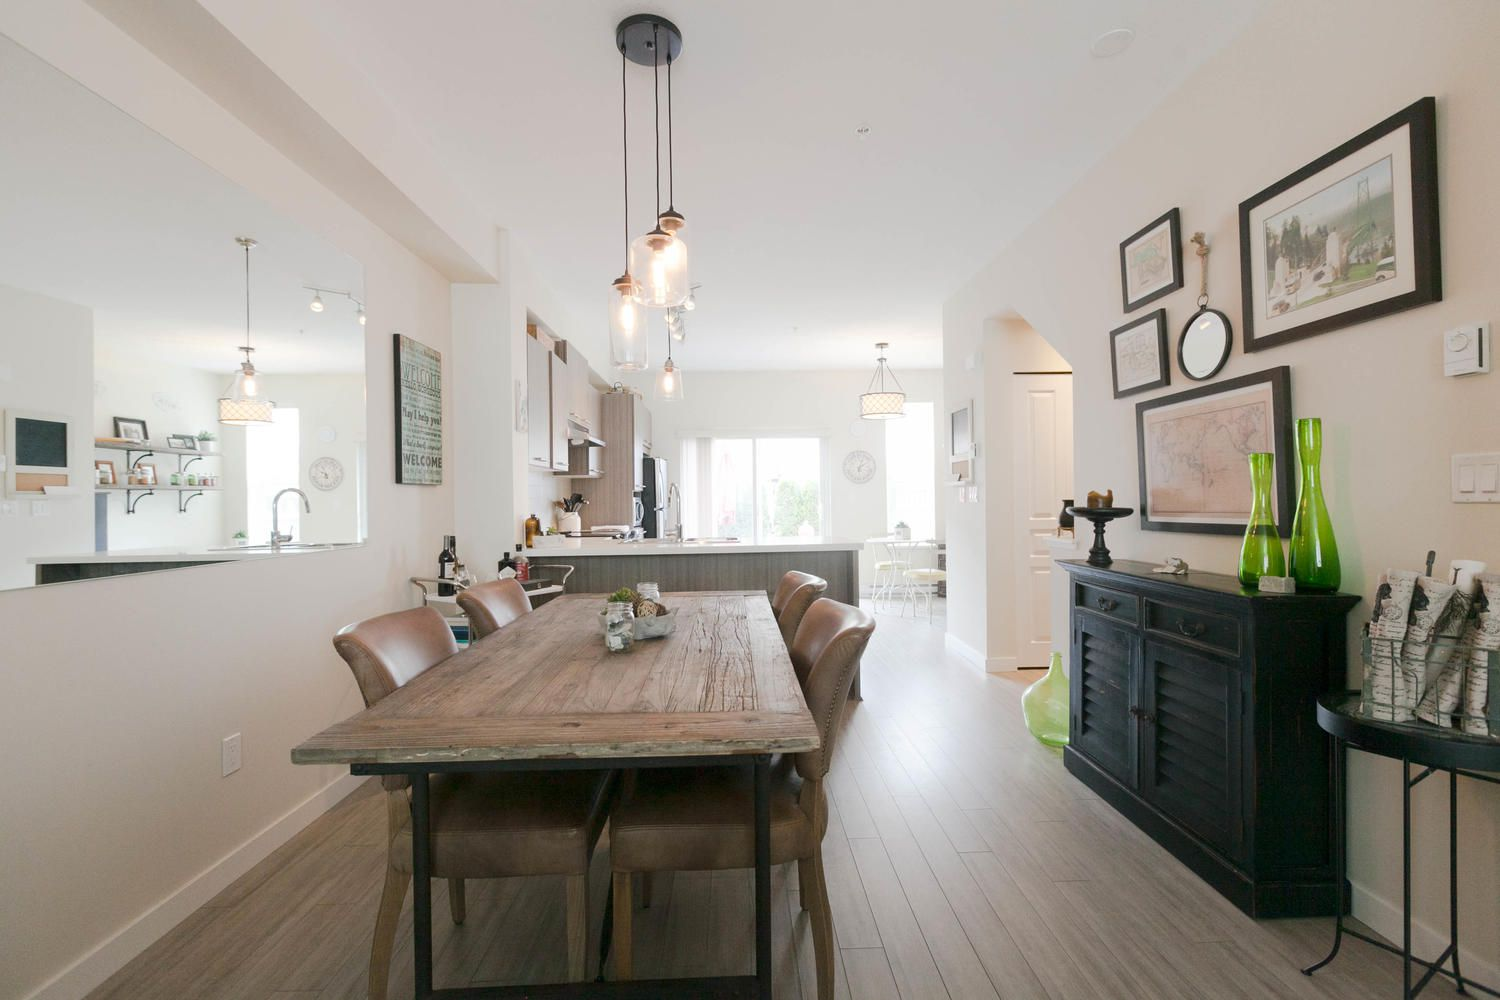 """Photo 11: Photos: 97 7938 209 Street in Langley: Willoughby Heights Townhouse for sale in """"Red Maple Park"""" : MLS®# R2260950"""